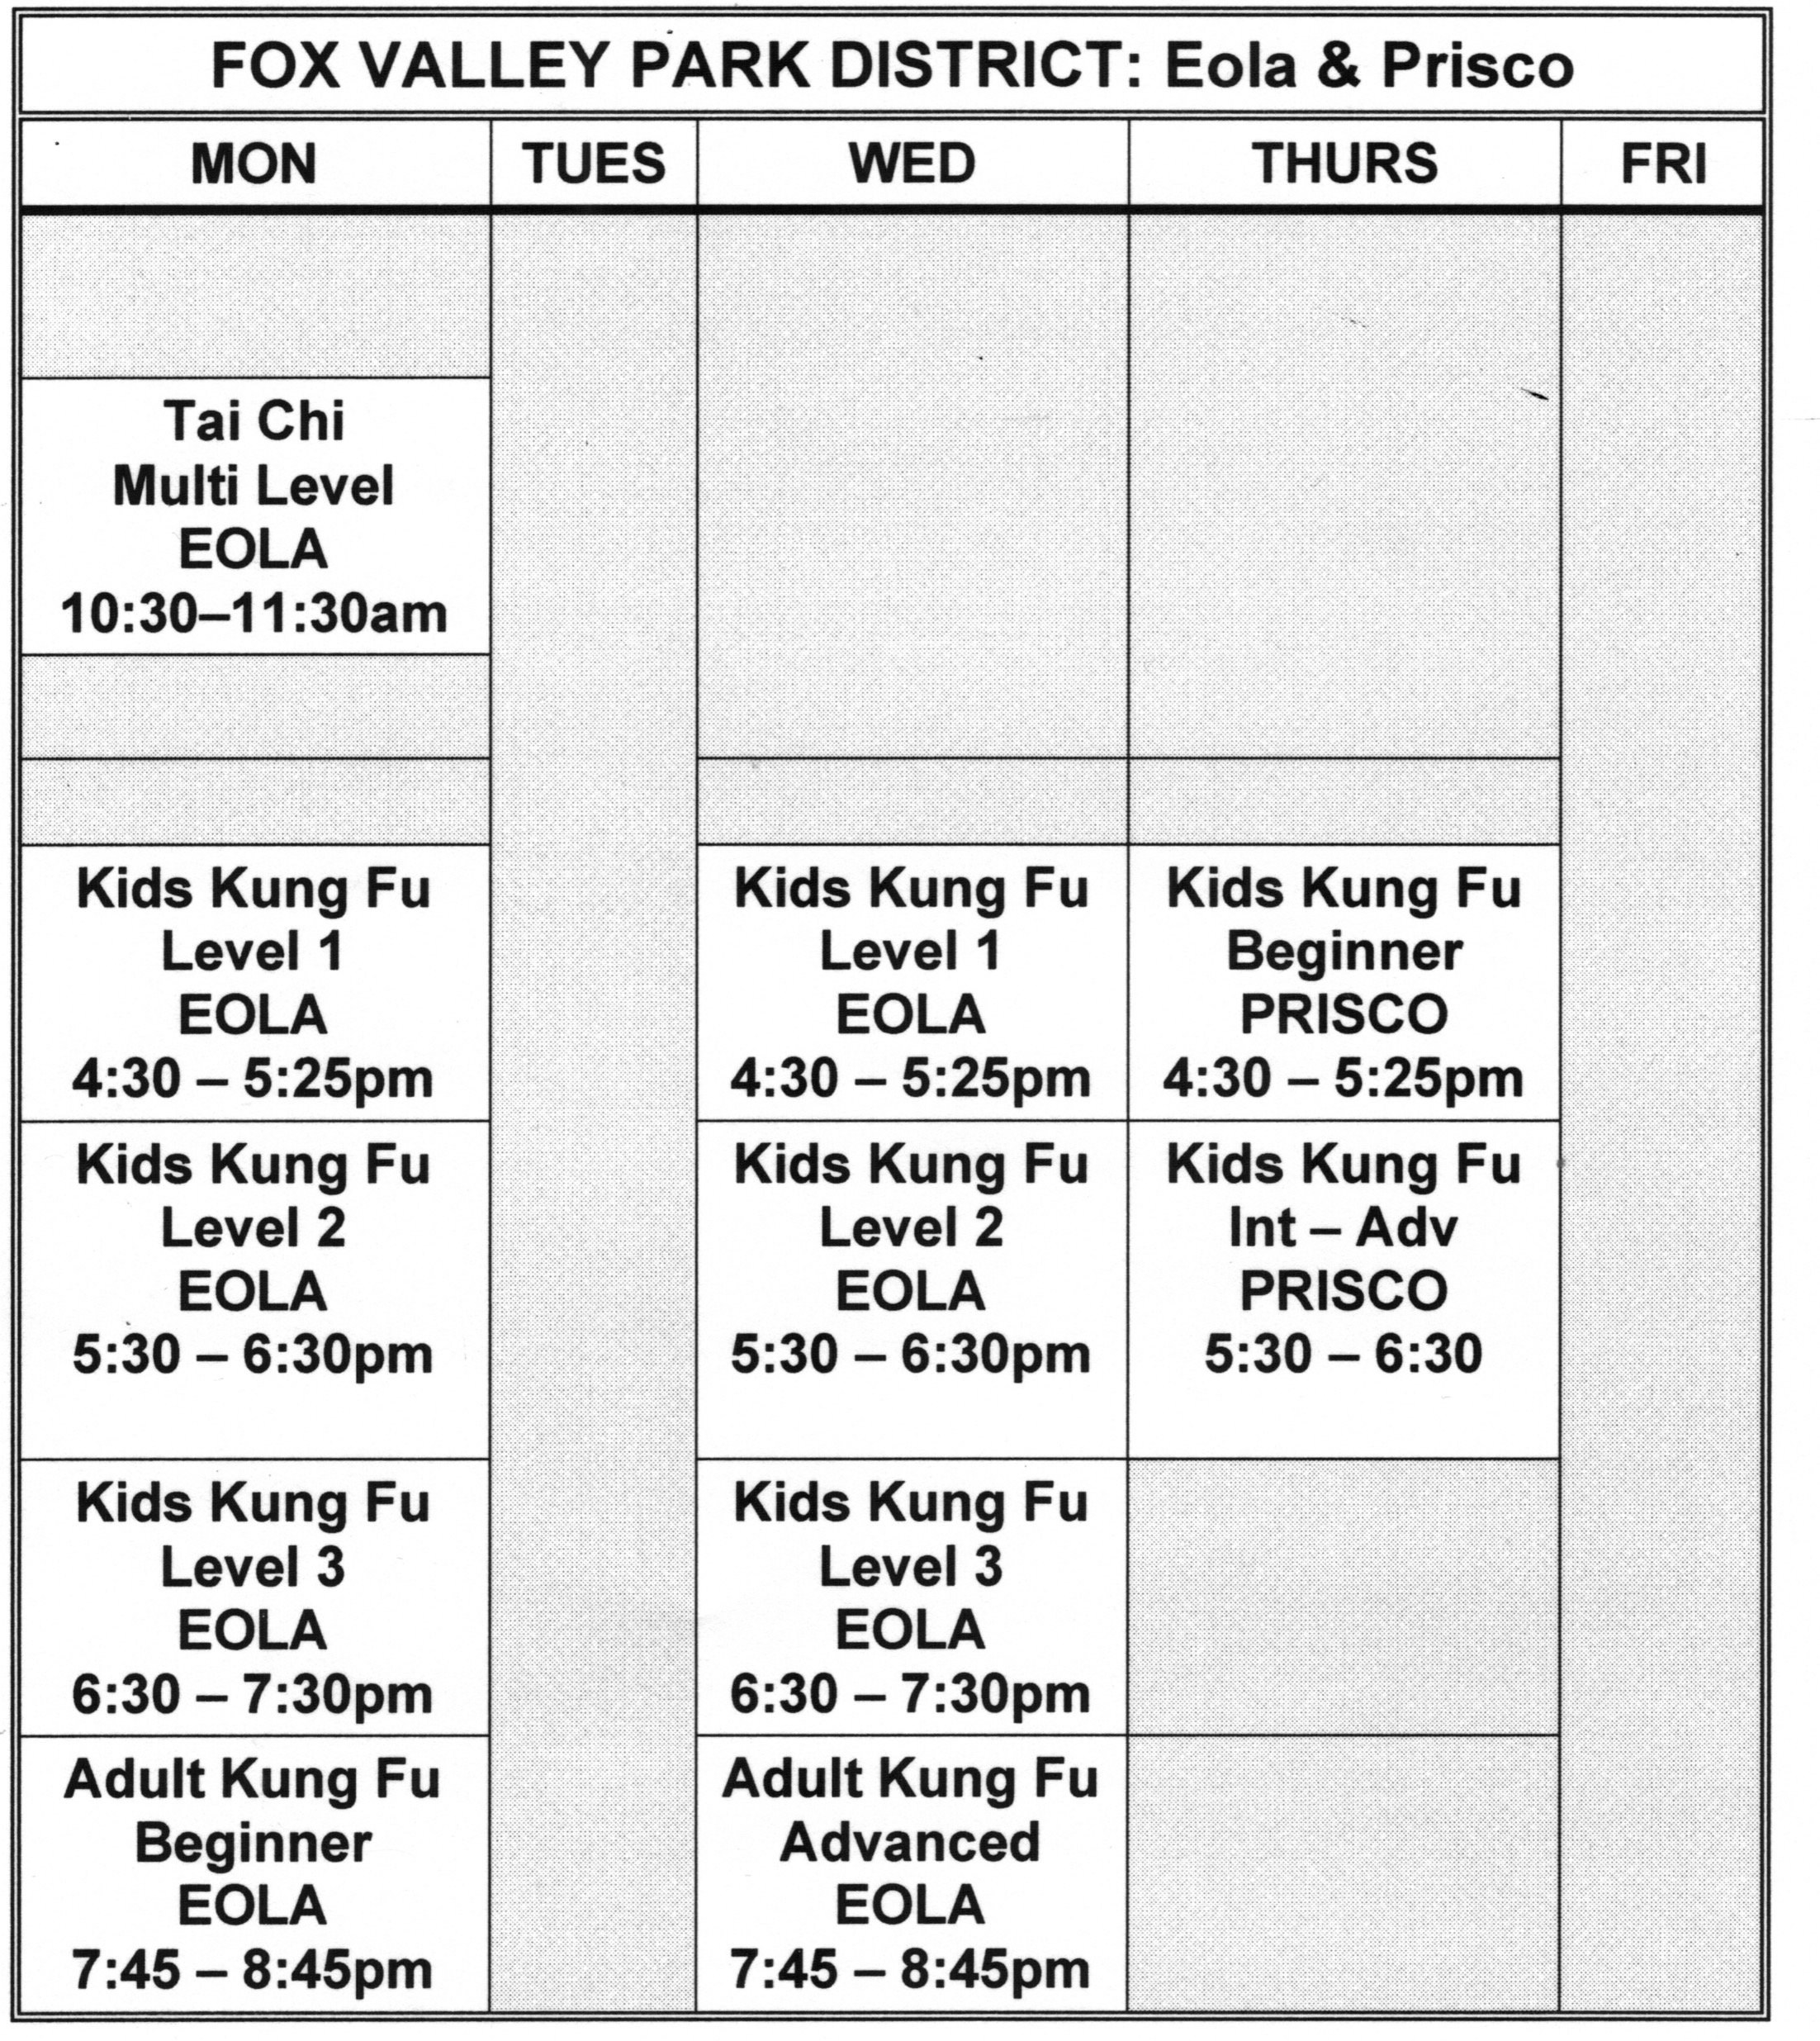 FVPD SCHED FALL 2019 2.jpeg